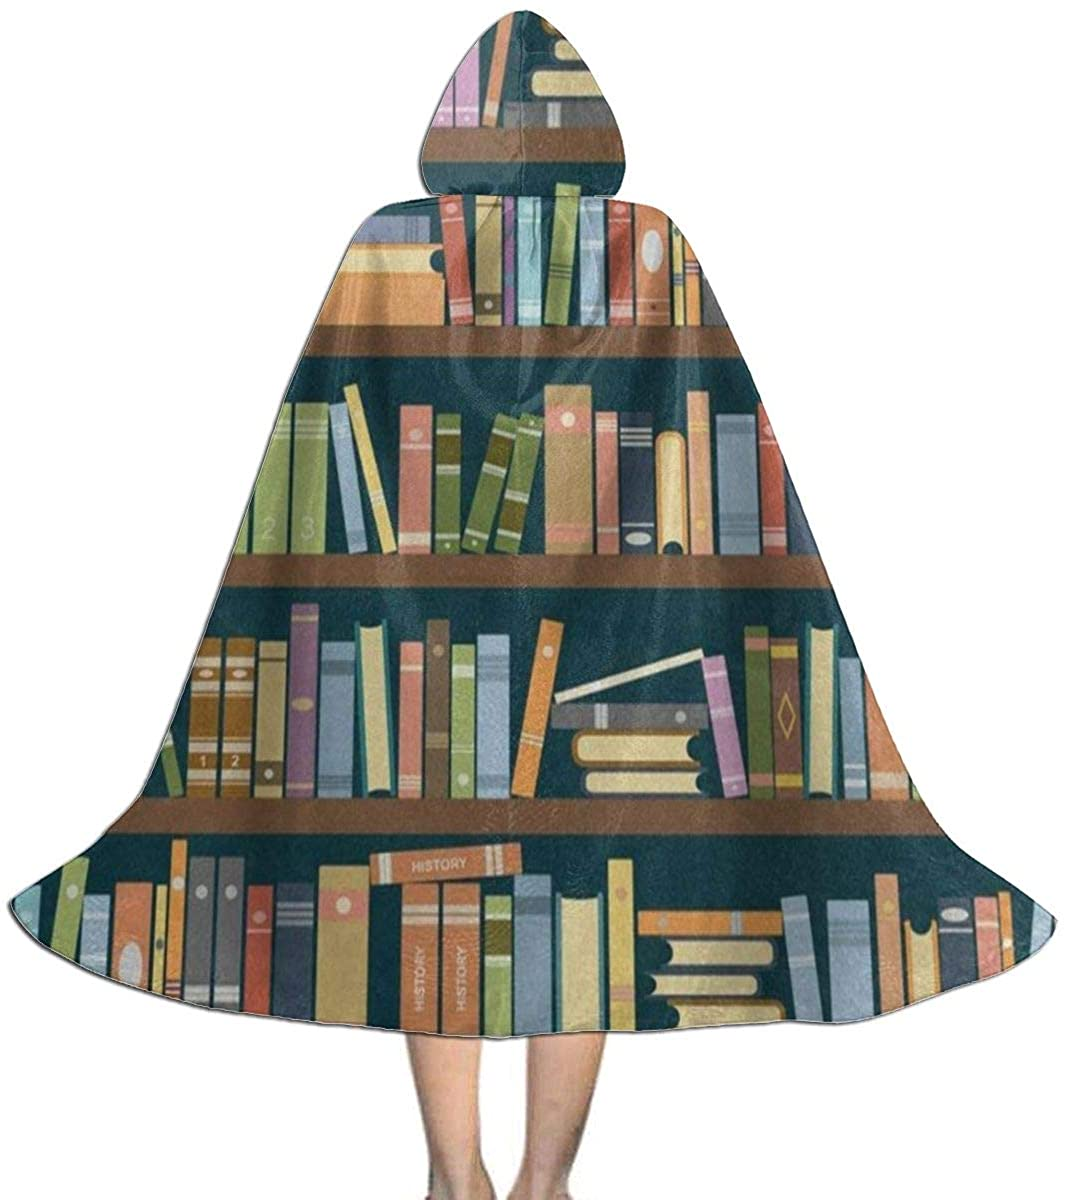 Bookshelf in The Library Bookworm Kids Hooded Cloak Cape for Christmas Halloween Cosplay Costumes